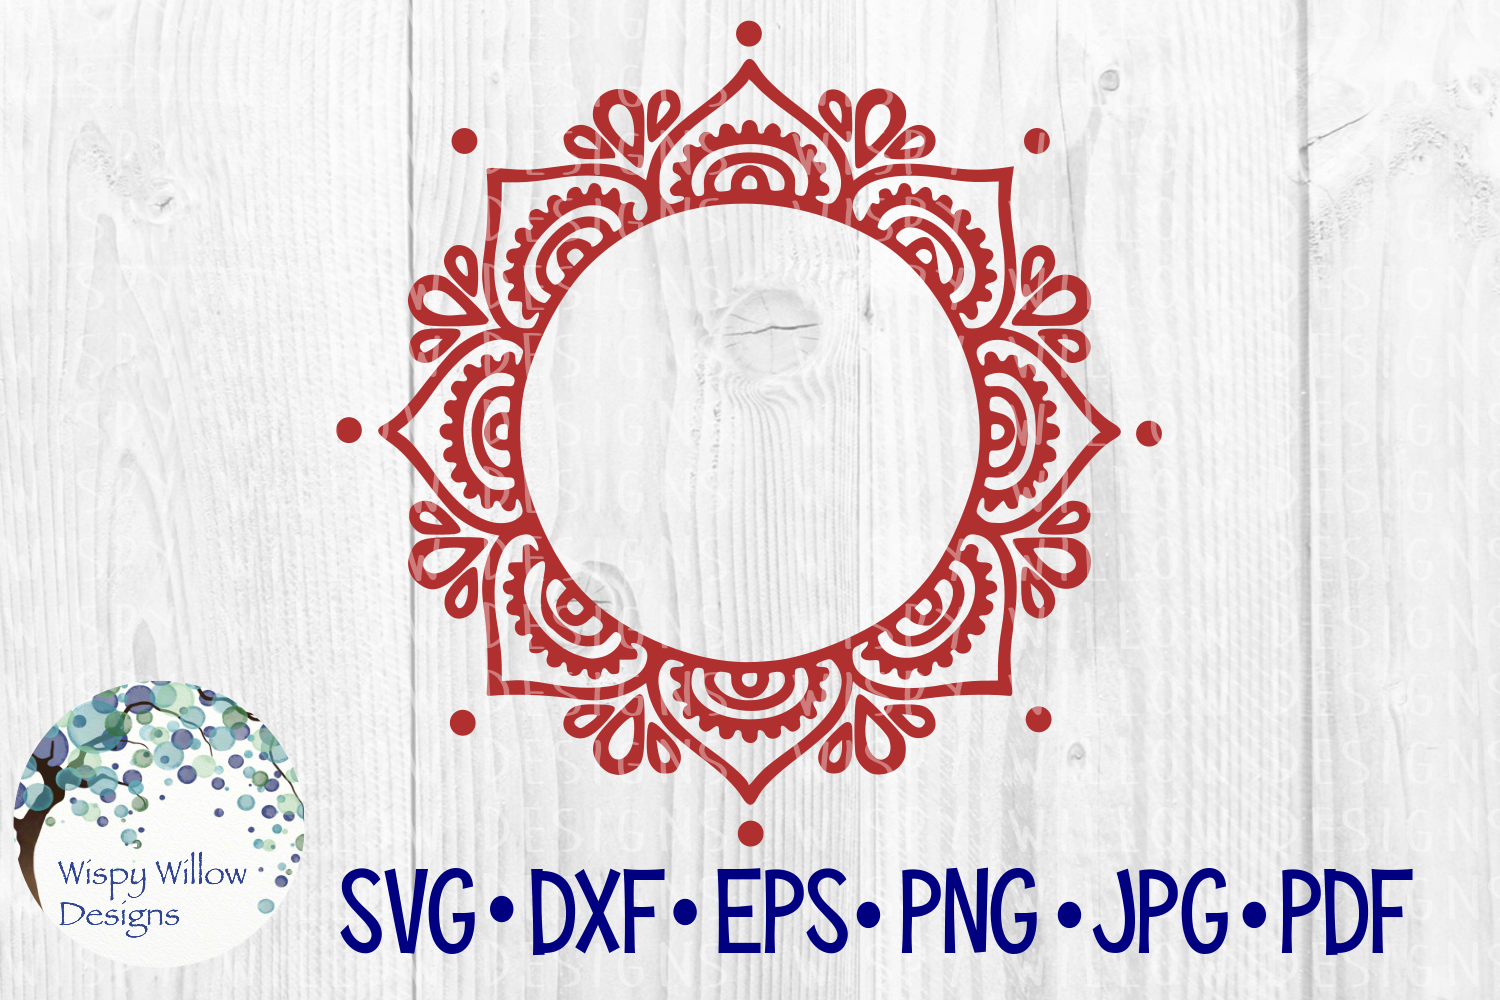 Download Free Mandala Craft File Graphic By Wispywillowdesigns Creative Fabrica for Cricut Explore, Silhouette and other cutting machines.